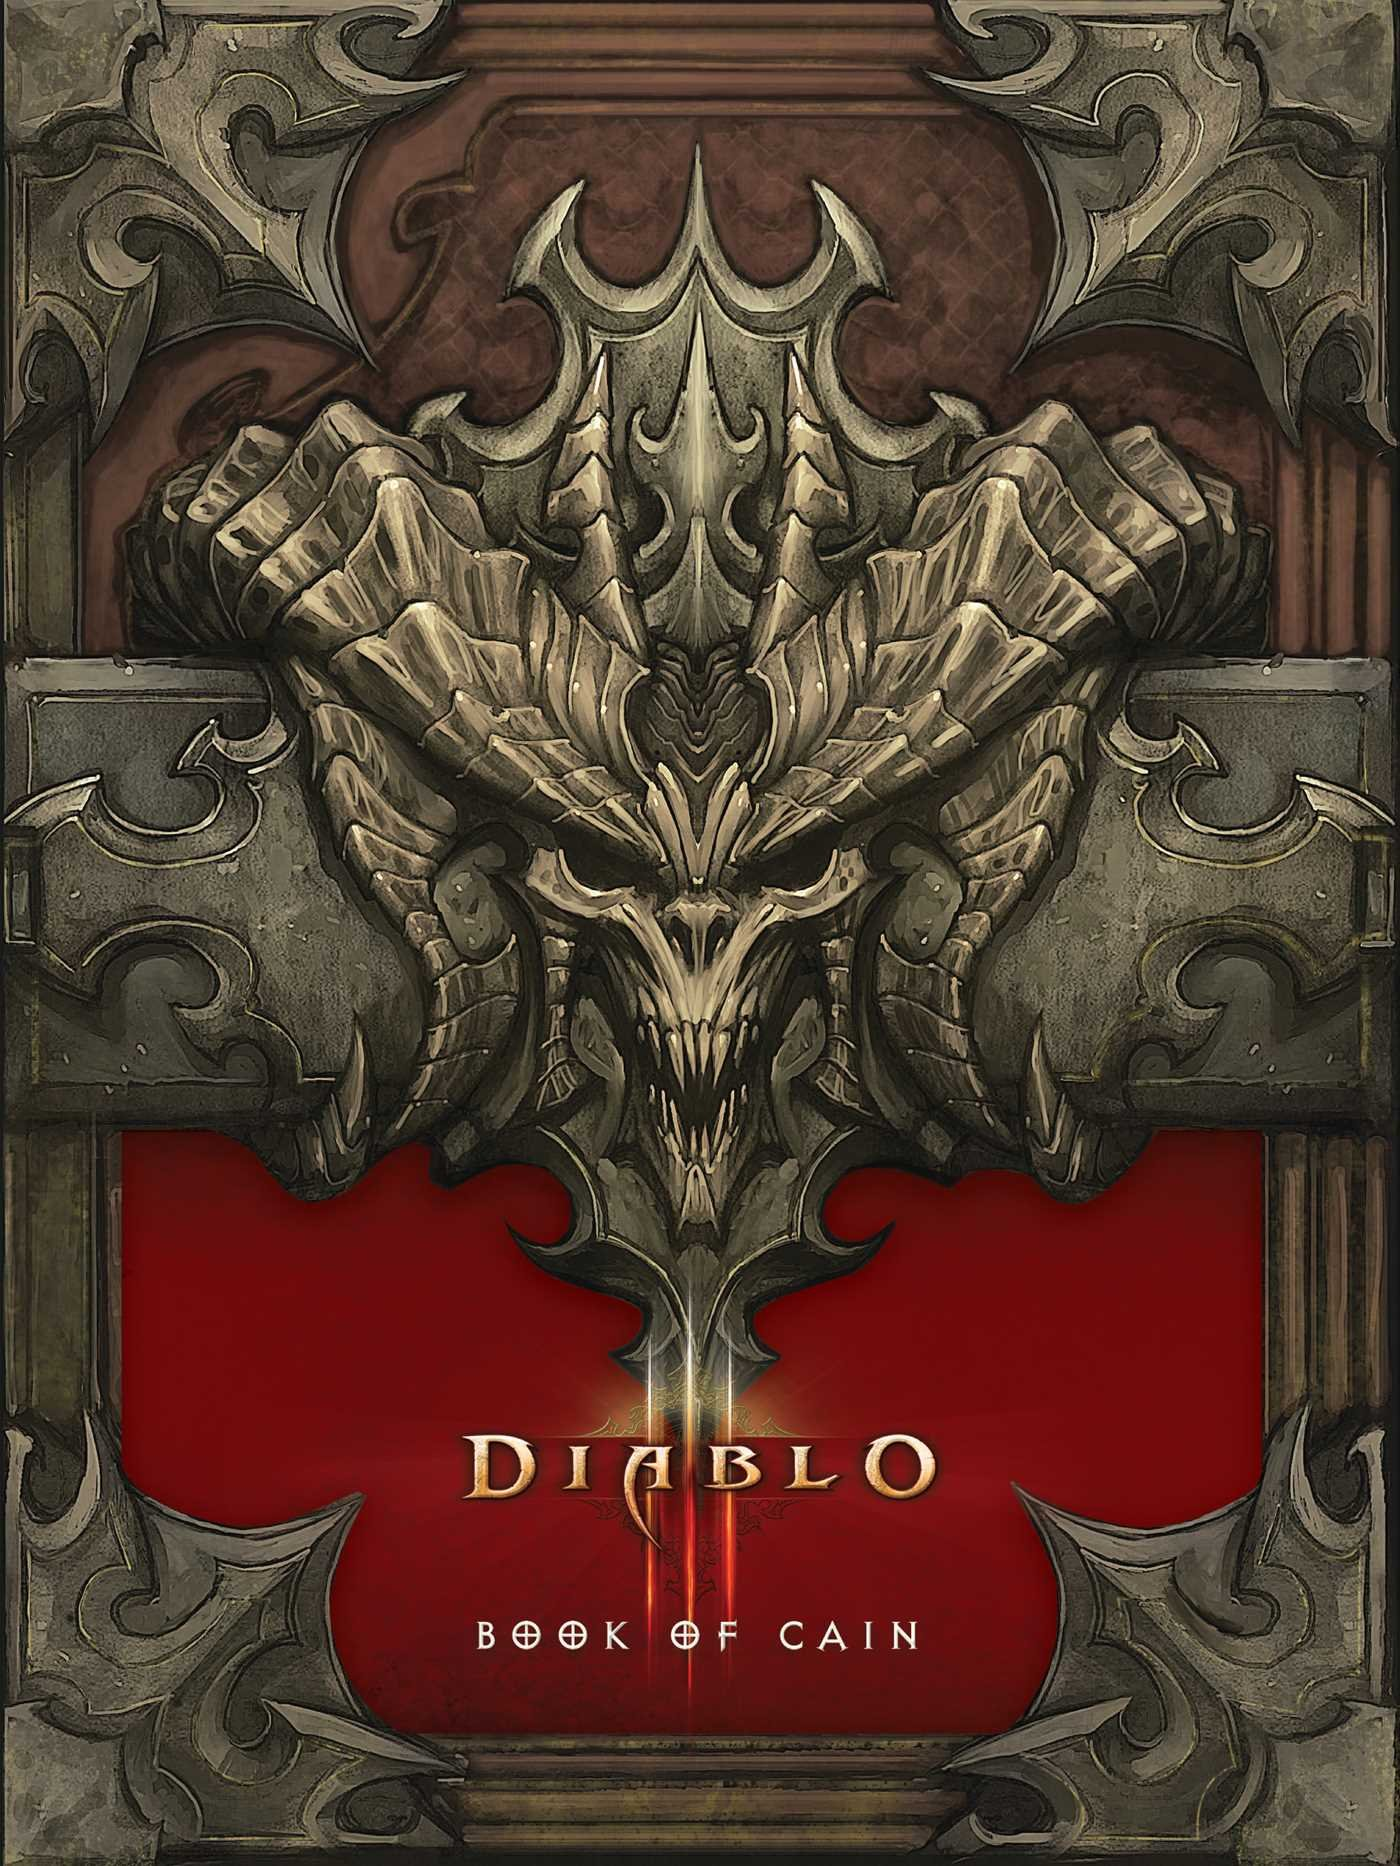 amazon com diablo iii book of cain 9781608878024 deckard cain